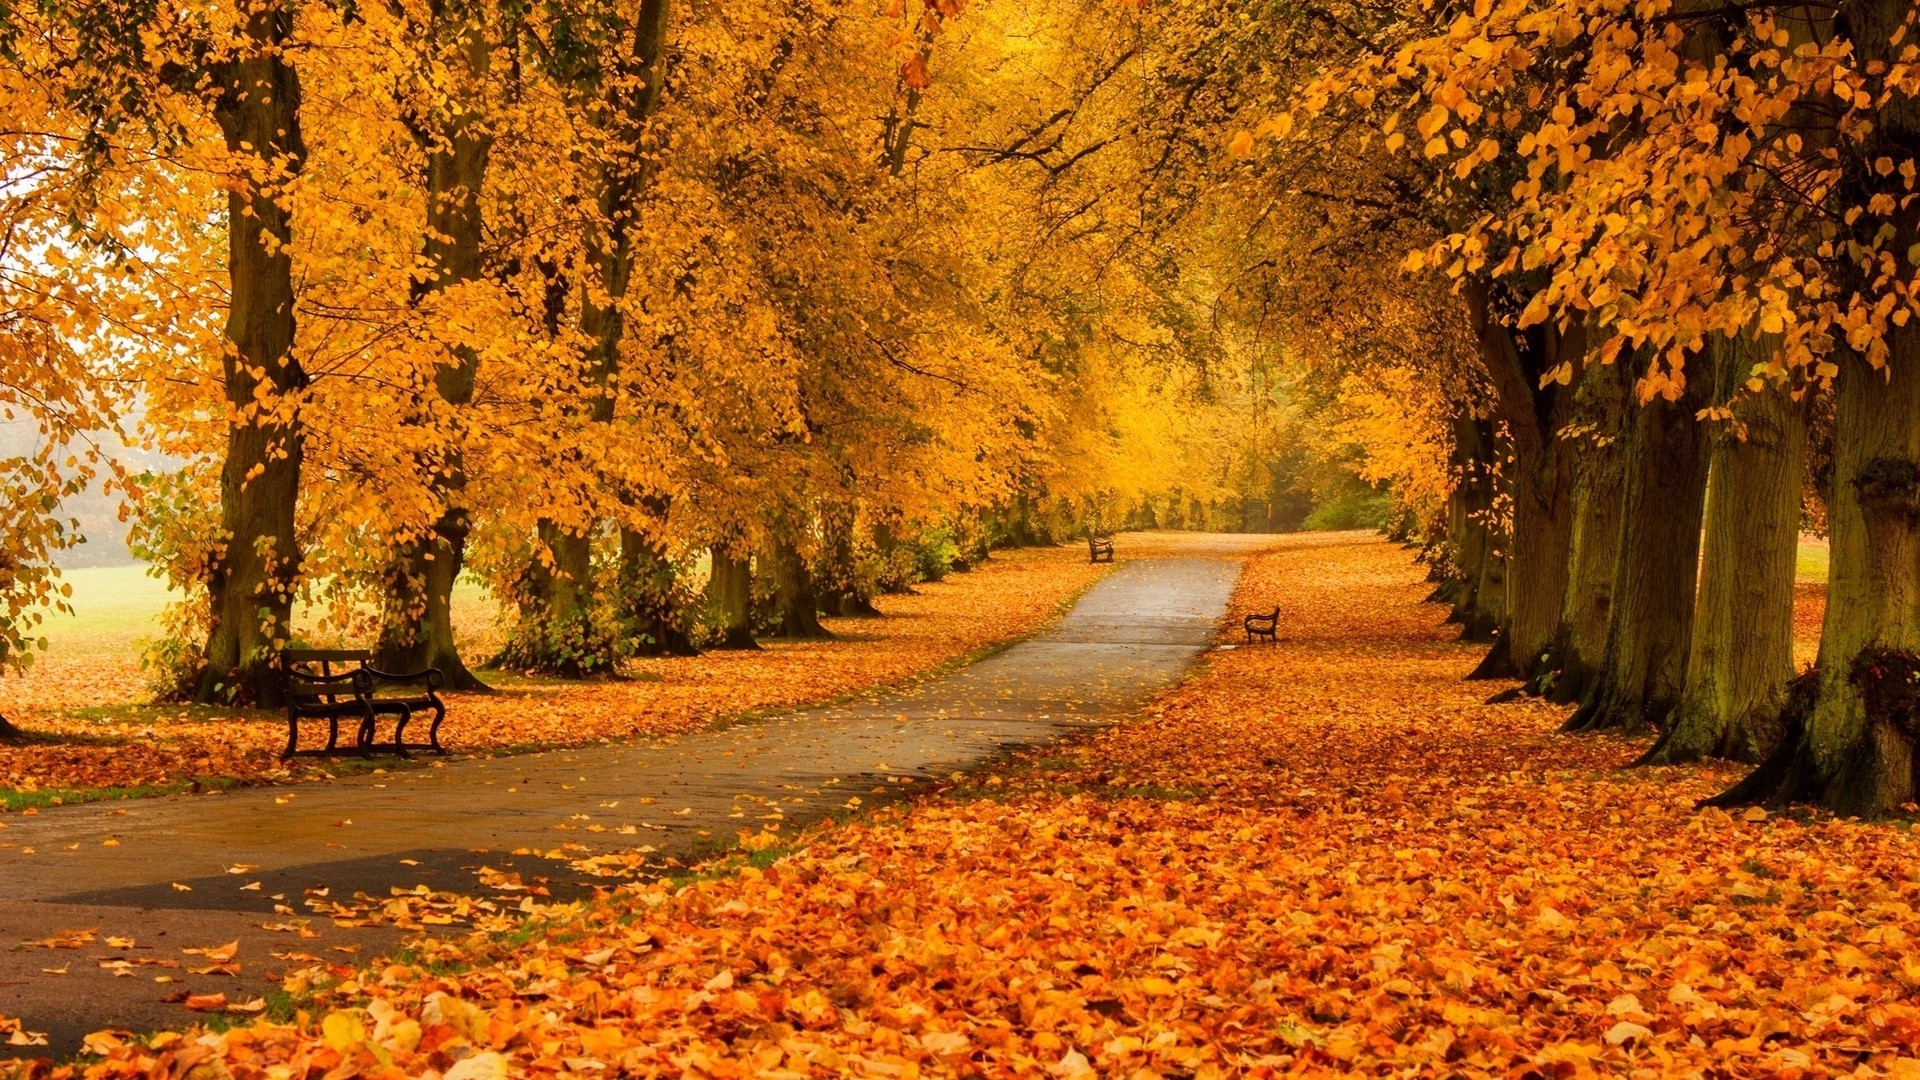 69 Fall desktop backgrounds  Download free amazing